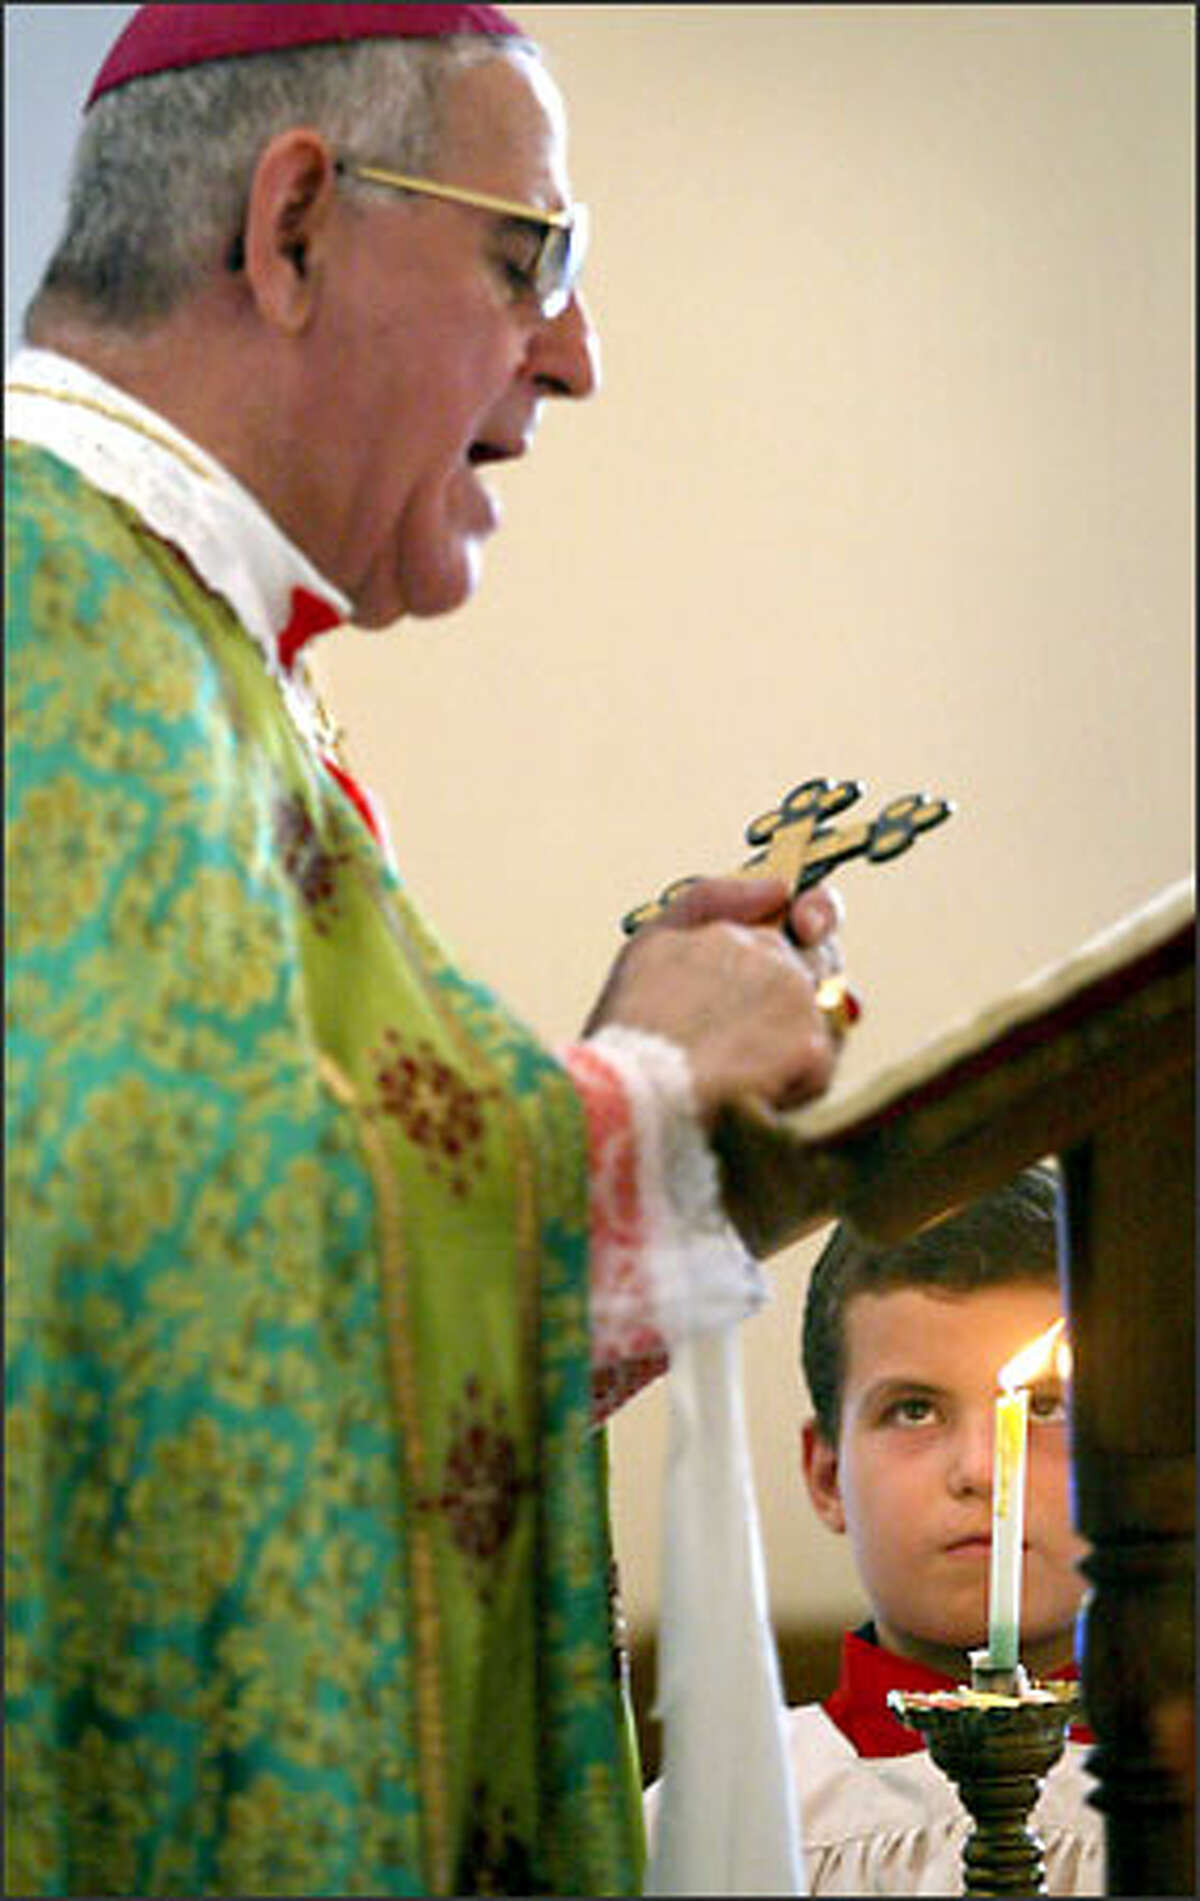 Altar boy Farj Khaleed, 11, assists Archbishop Djibrael Kassab during Mass in Basra. When war broke out in Basra, most Christians left the city, as they did in the first Gulf War. Only now some of them are returning, Kassab said.